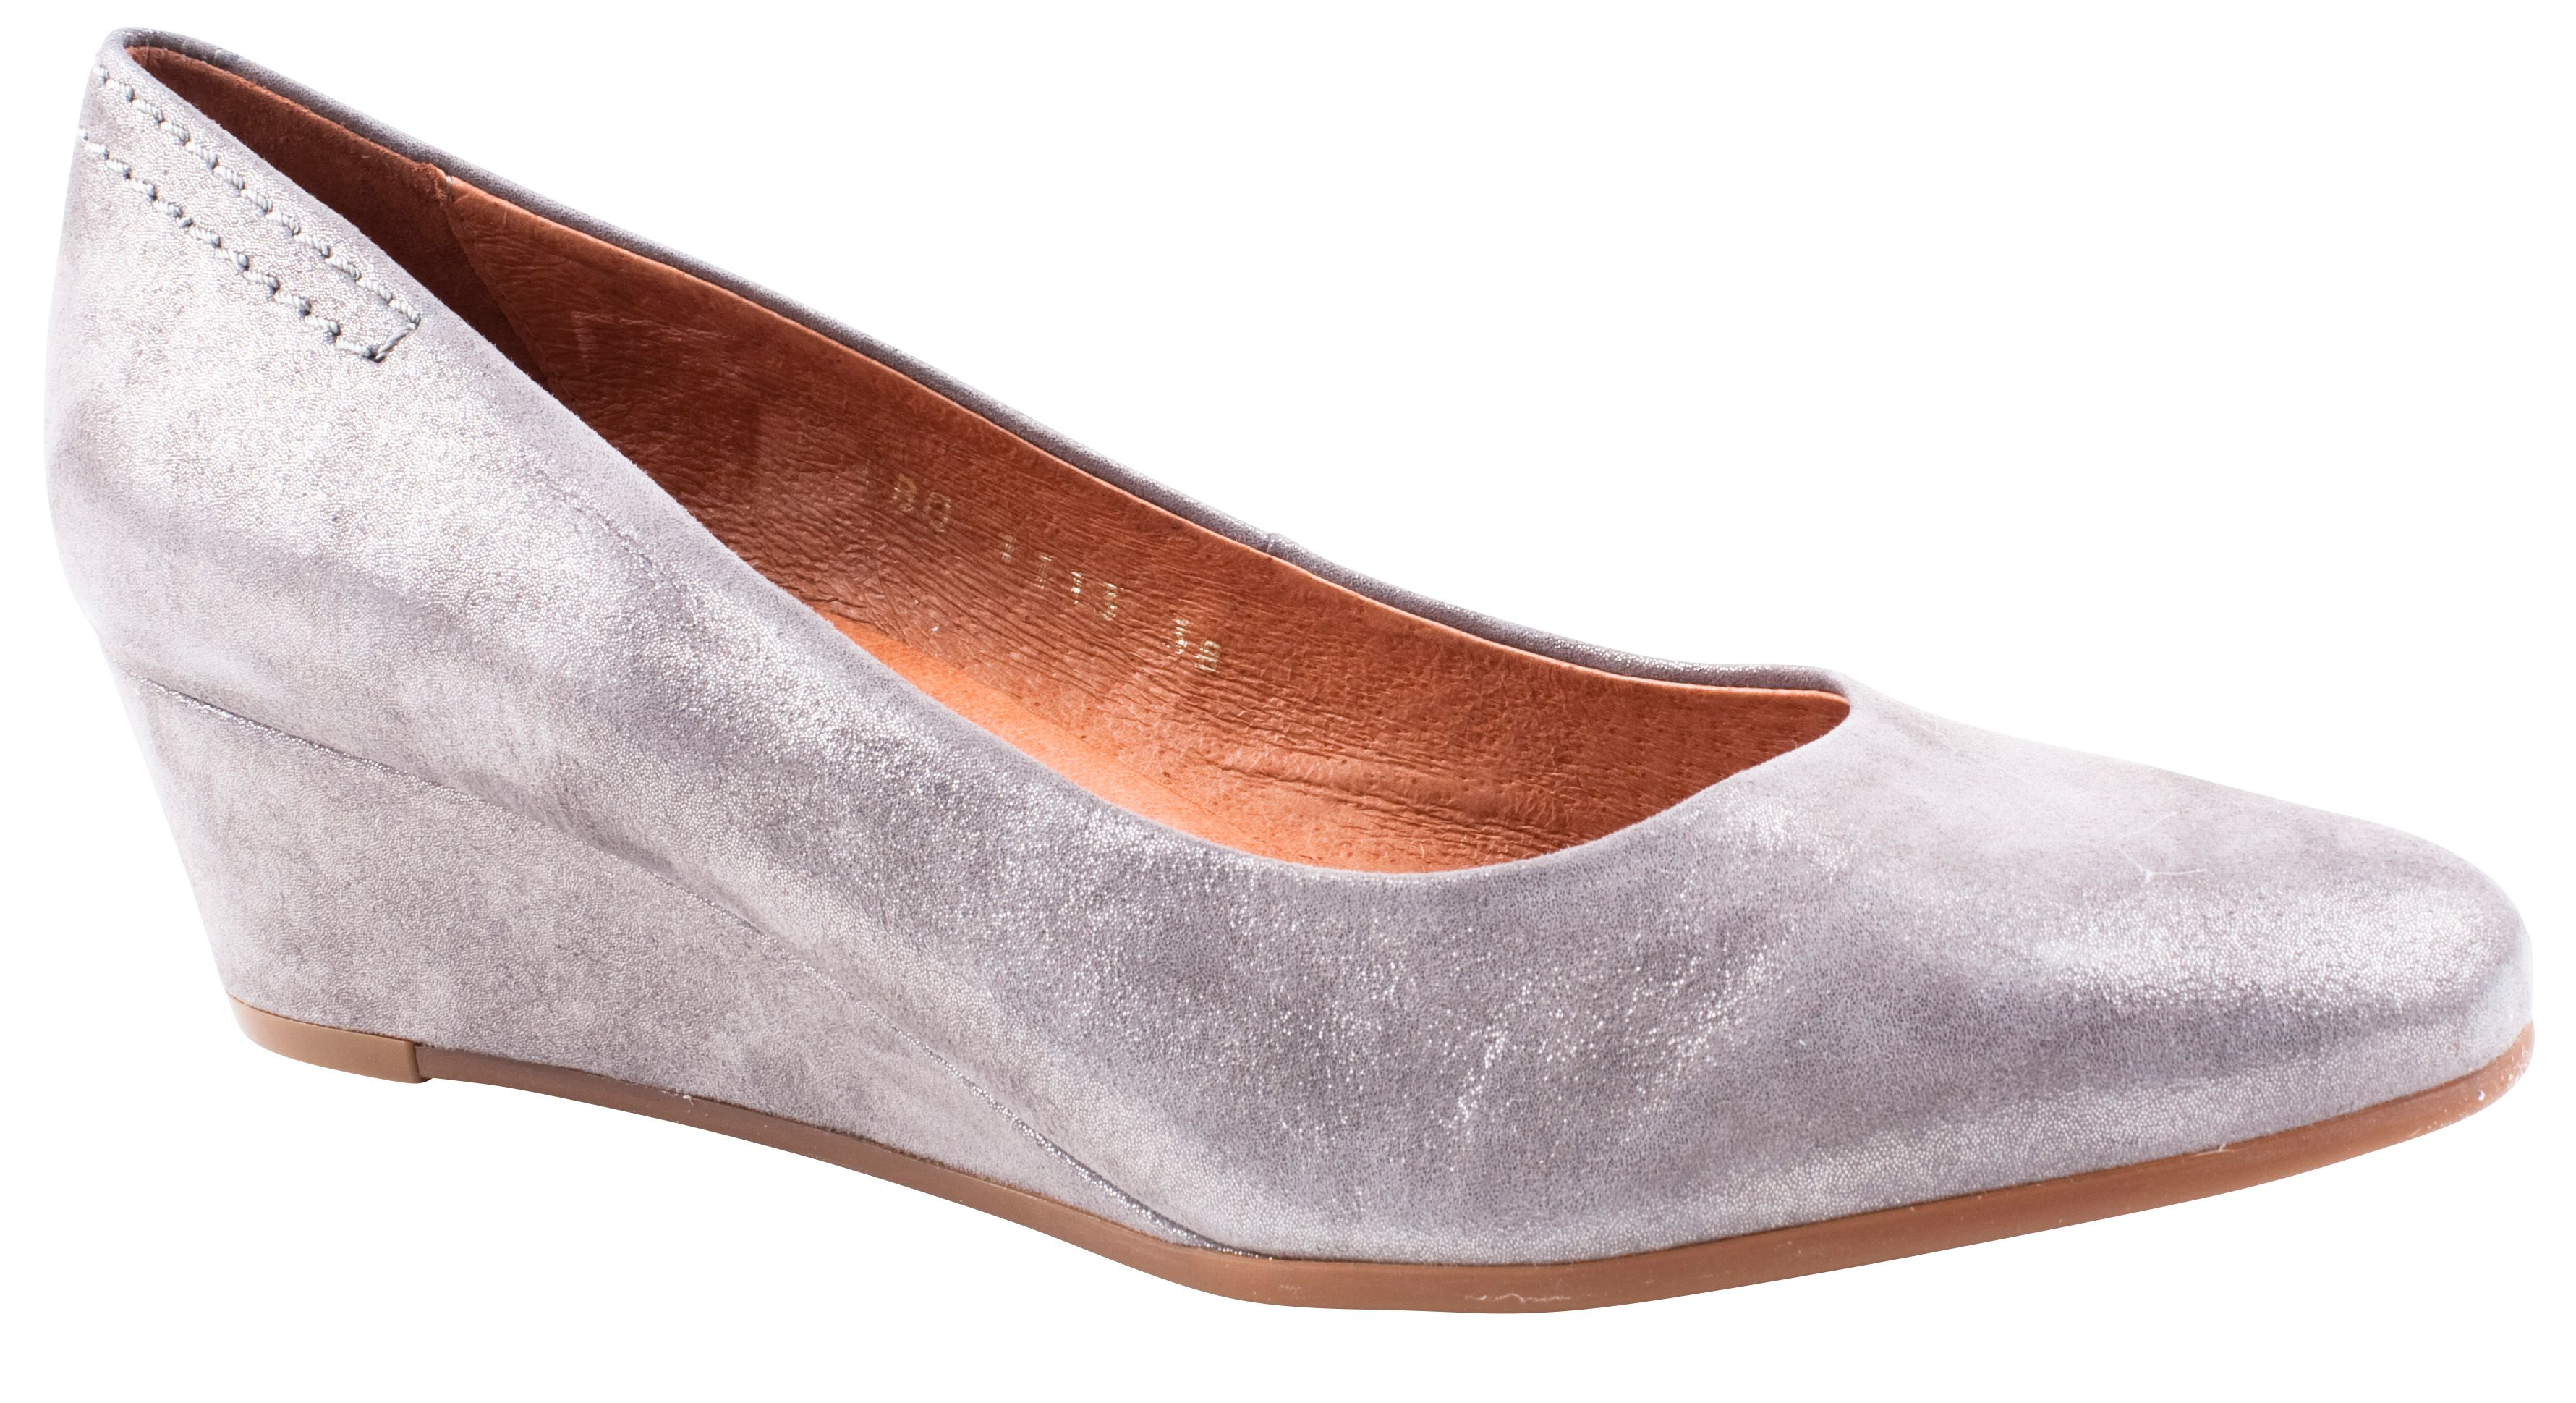 Bilbo heeled wedge shoes